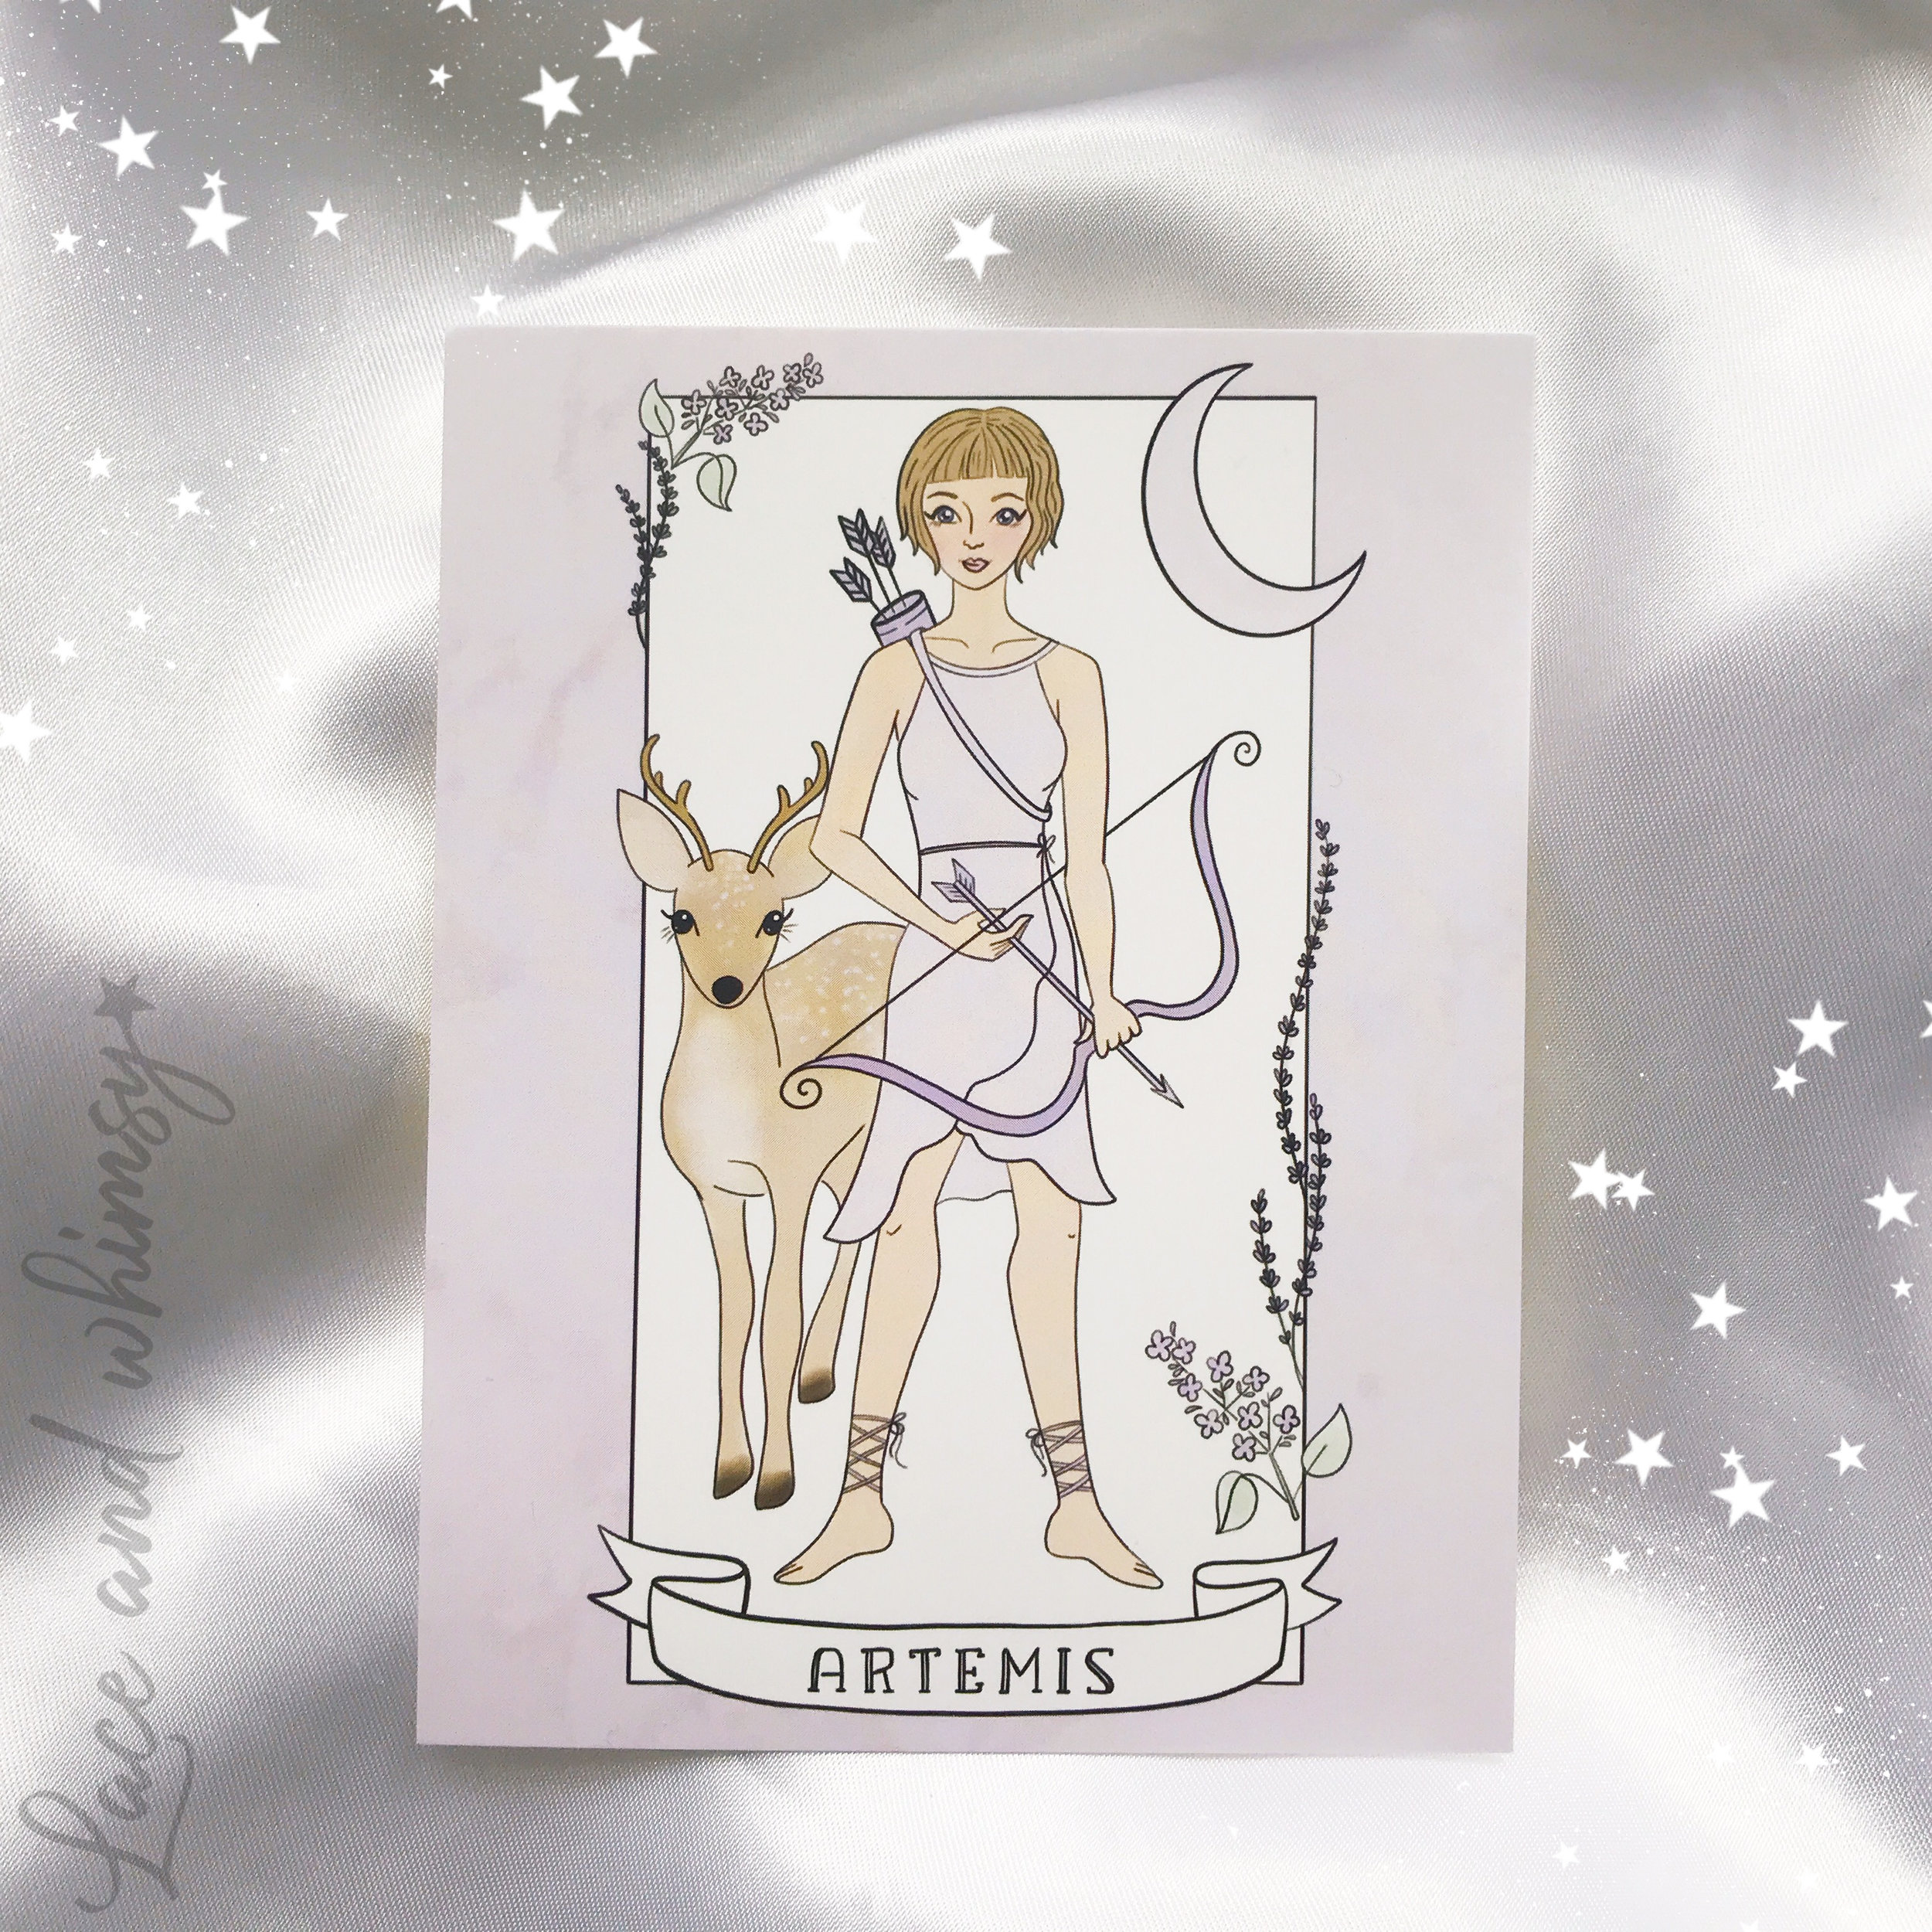 Artemis - goddess of the hunt and wilderness.